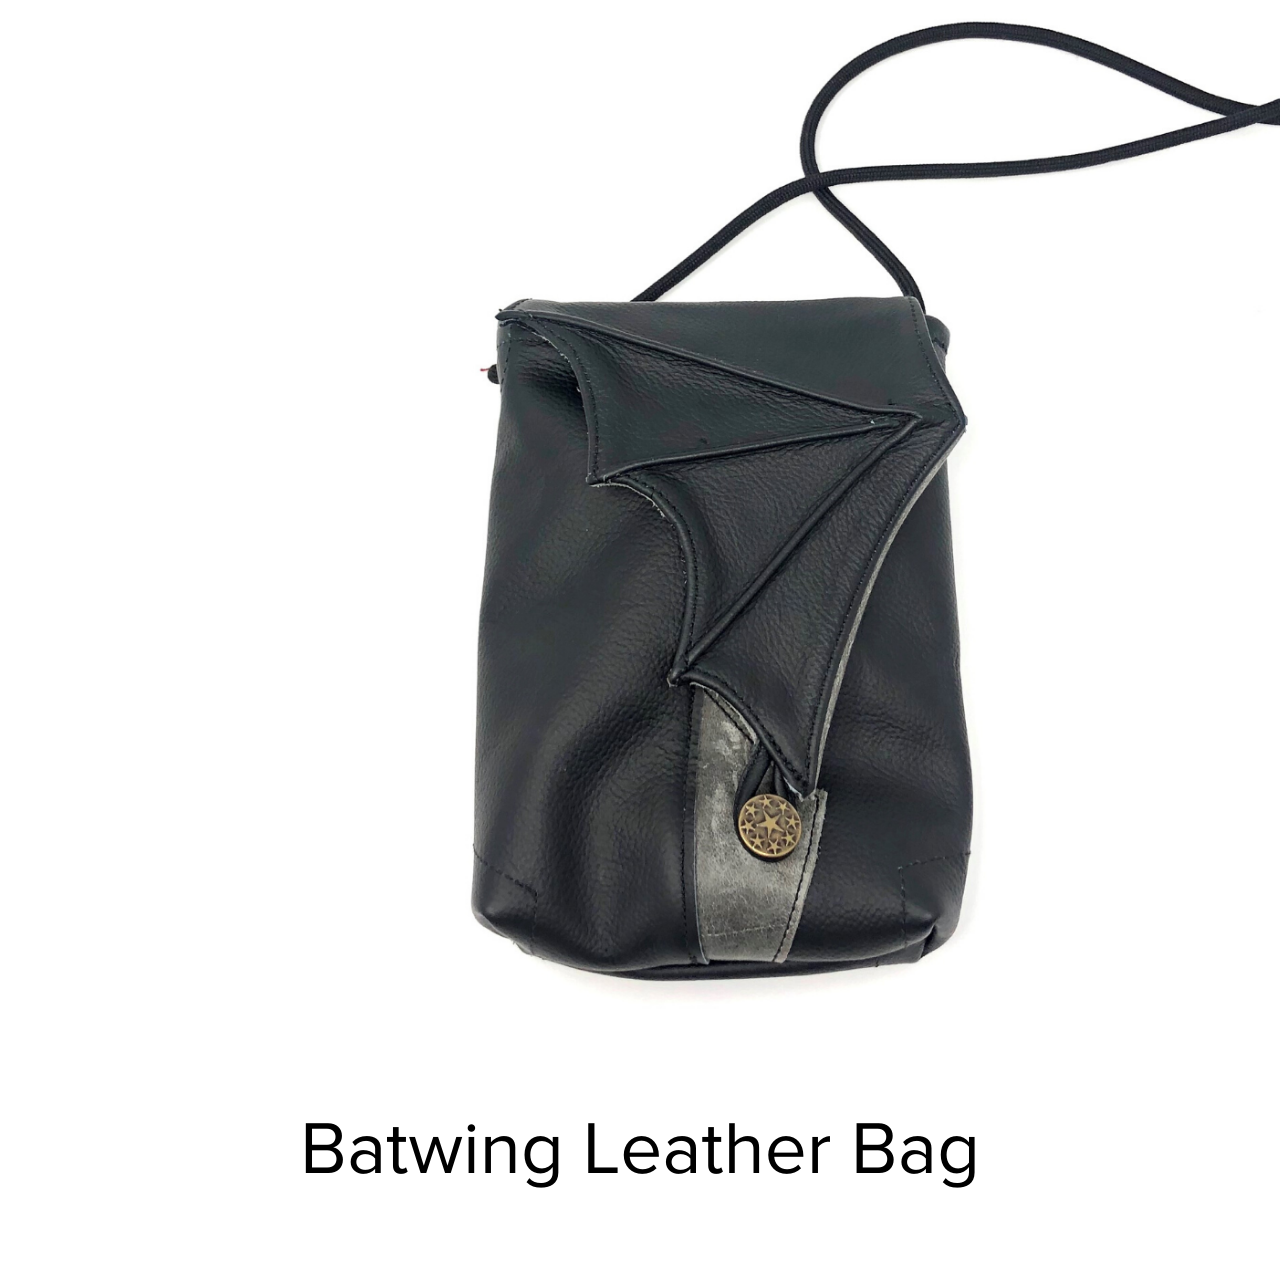 PJ Sheehy Bag Leather Batwing